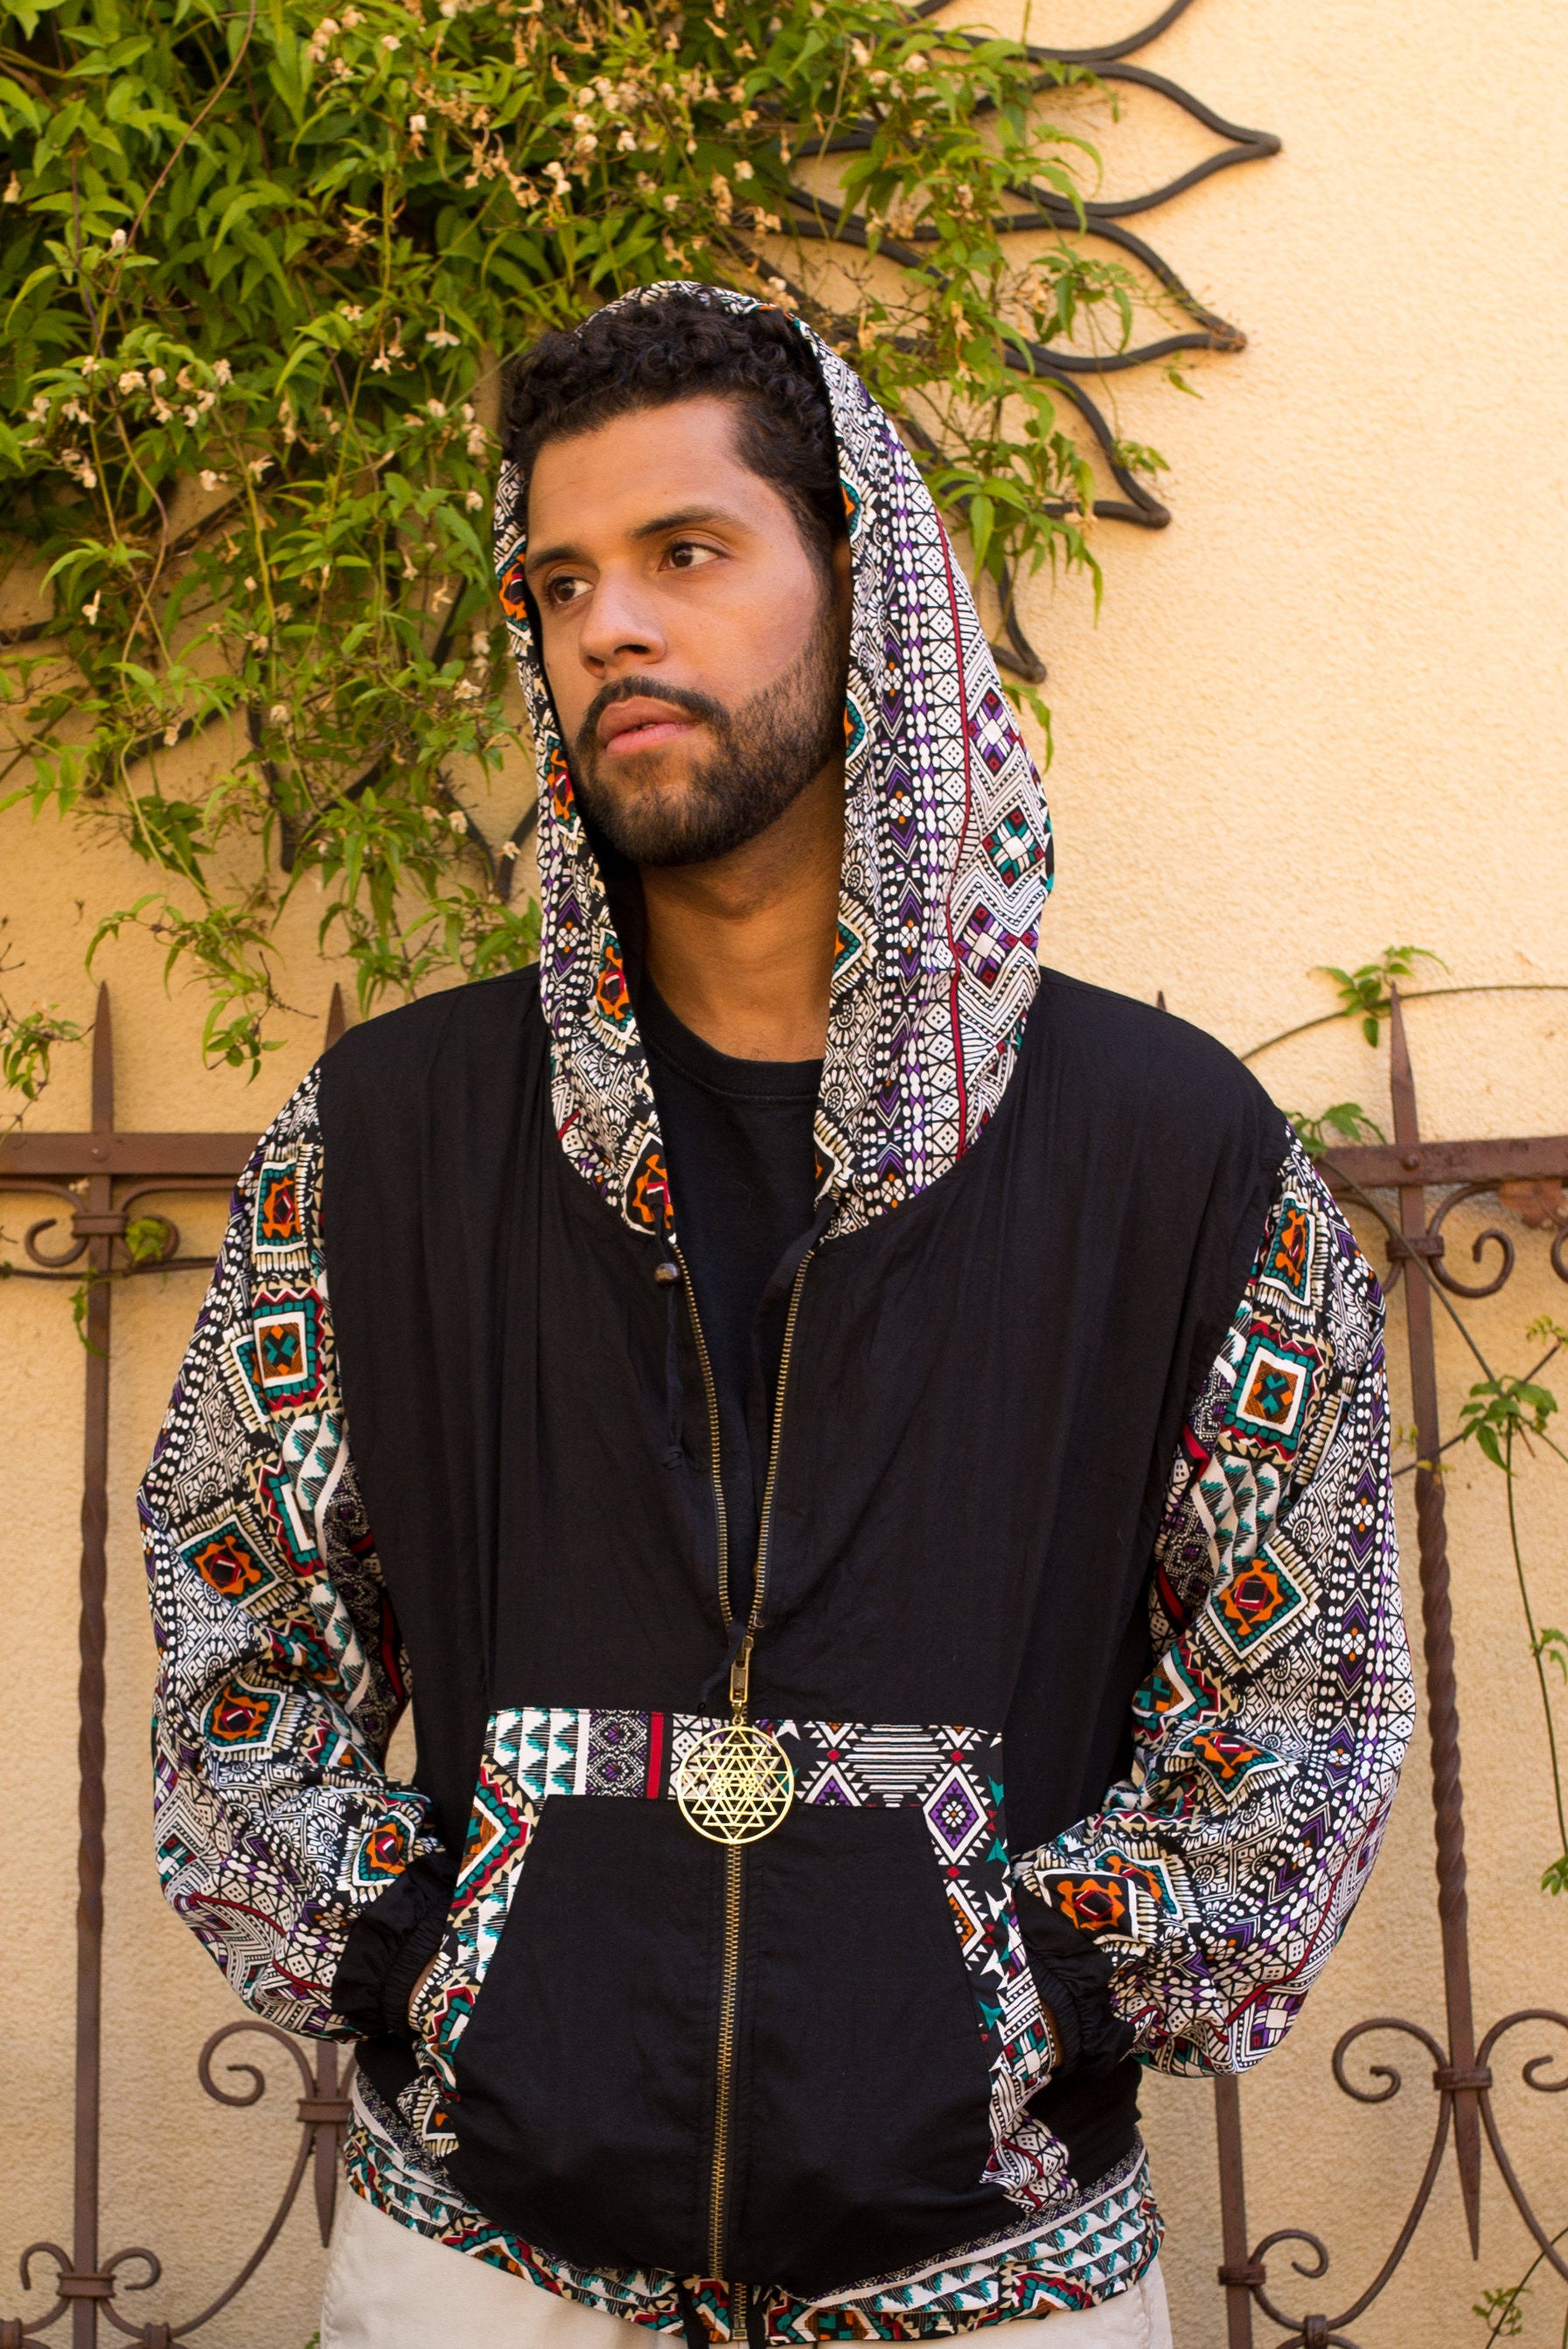 Unisex Reversible Hoodie Hoody Sweater Sweatshirt - Shri Yantra Zipper Pull - Playa Attire Mens Wear Inside Out Guys Boys Mens Ukg9dA